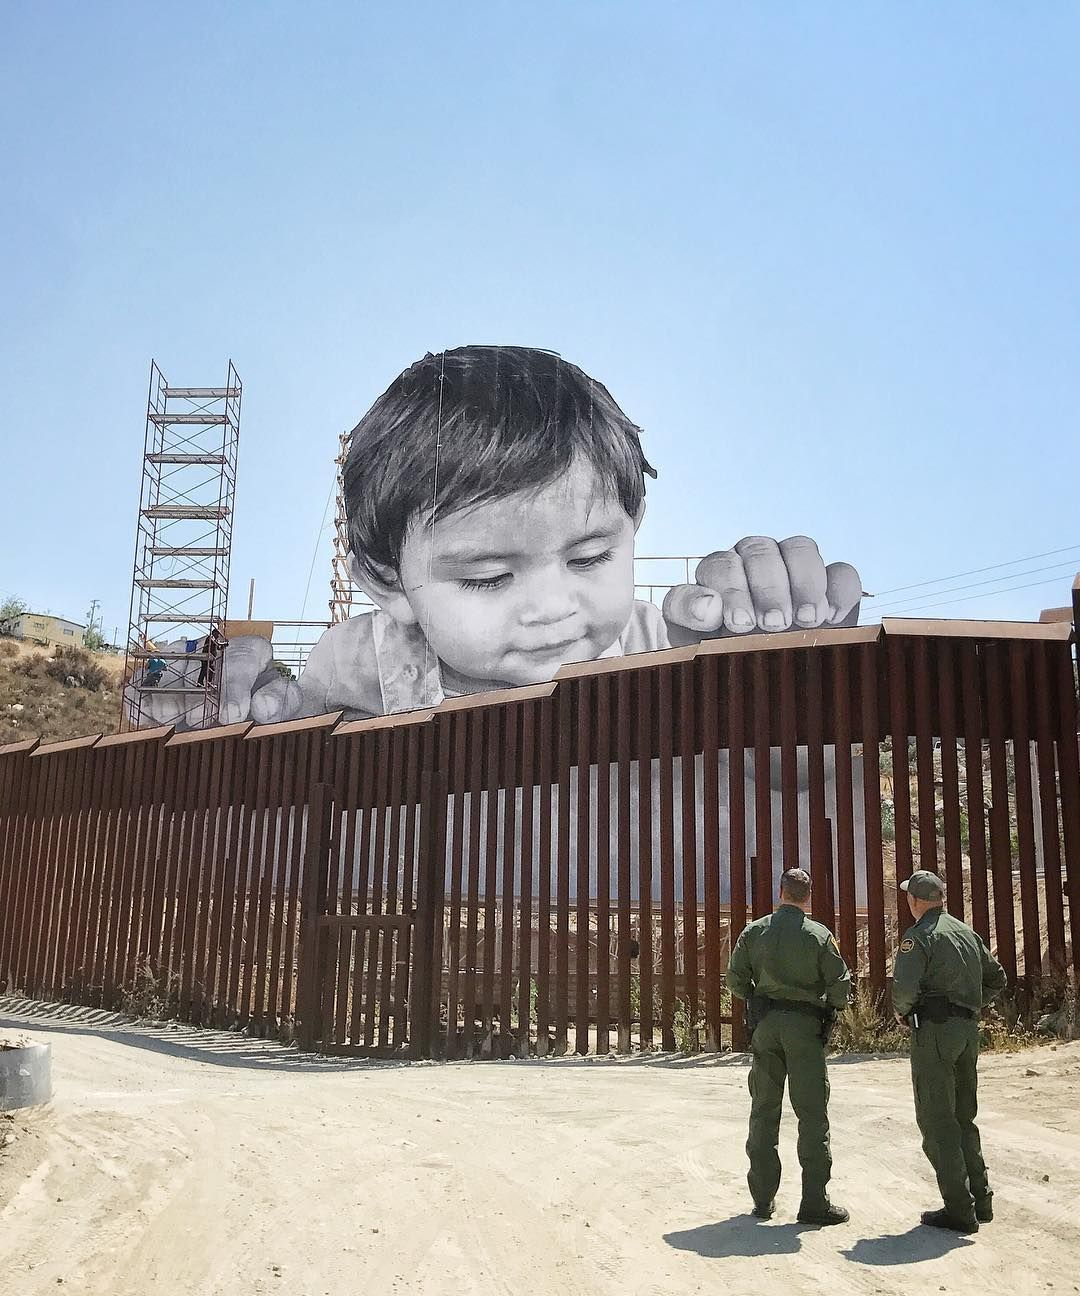 A Child Peers Over the US/Mexico Border Wall in a Giant New Photographic Work by JR